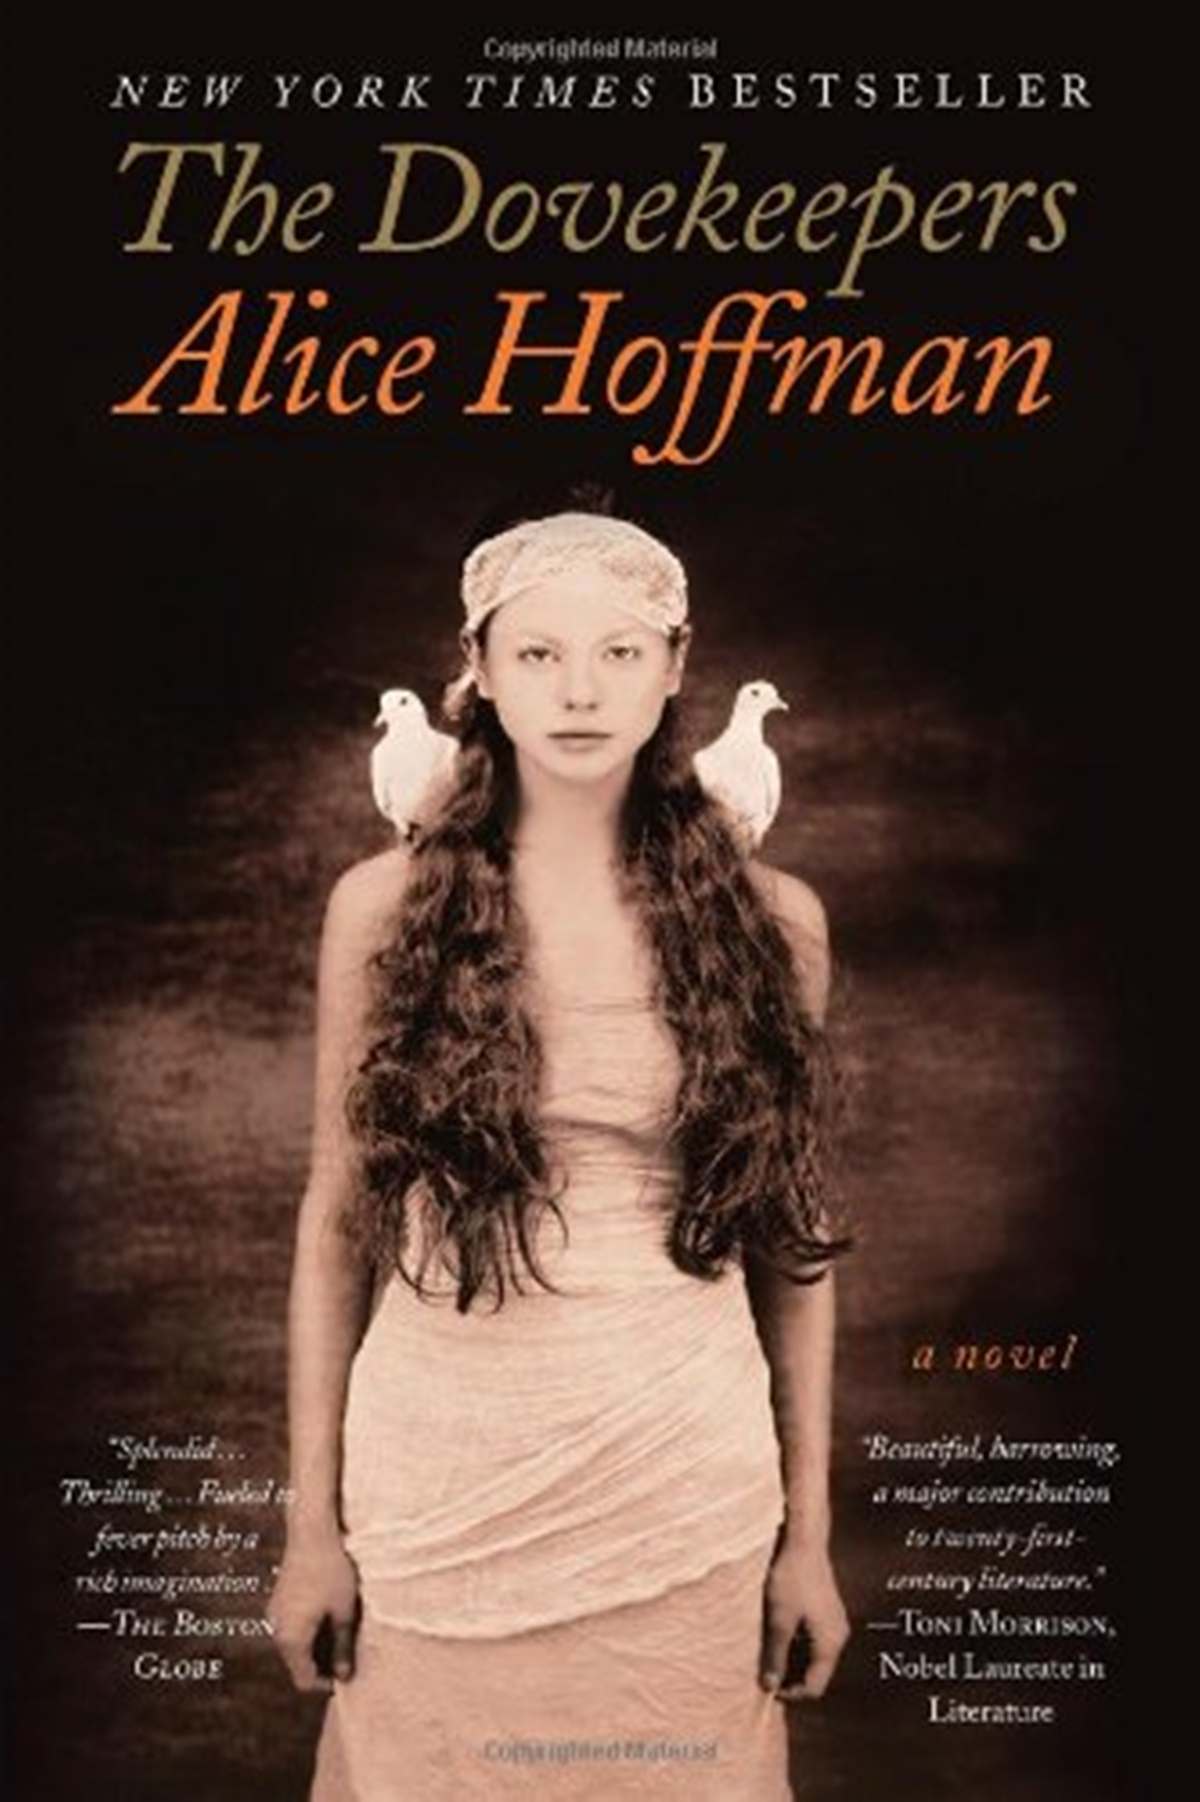 Historical Fiction Novels, the cover of The Dovekeepers by Alice Hoffman, books